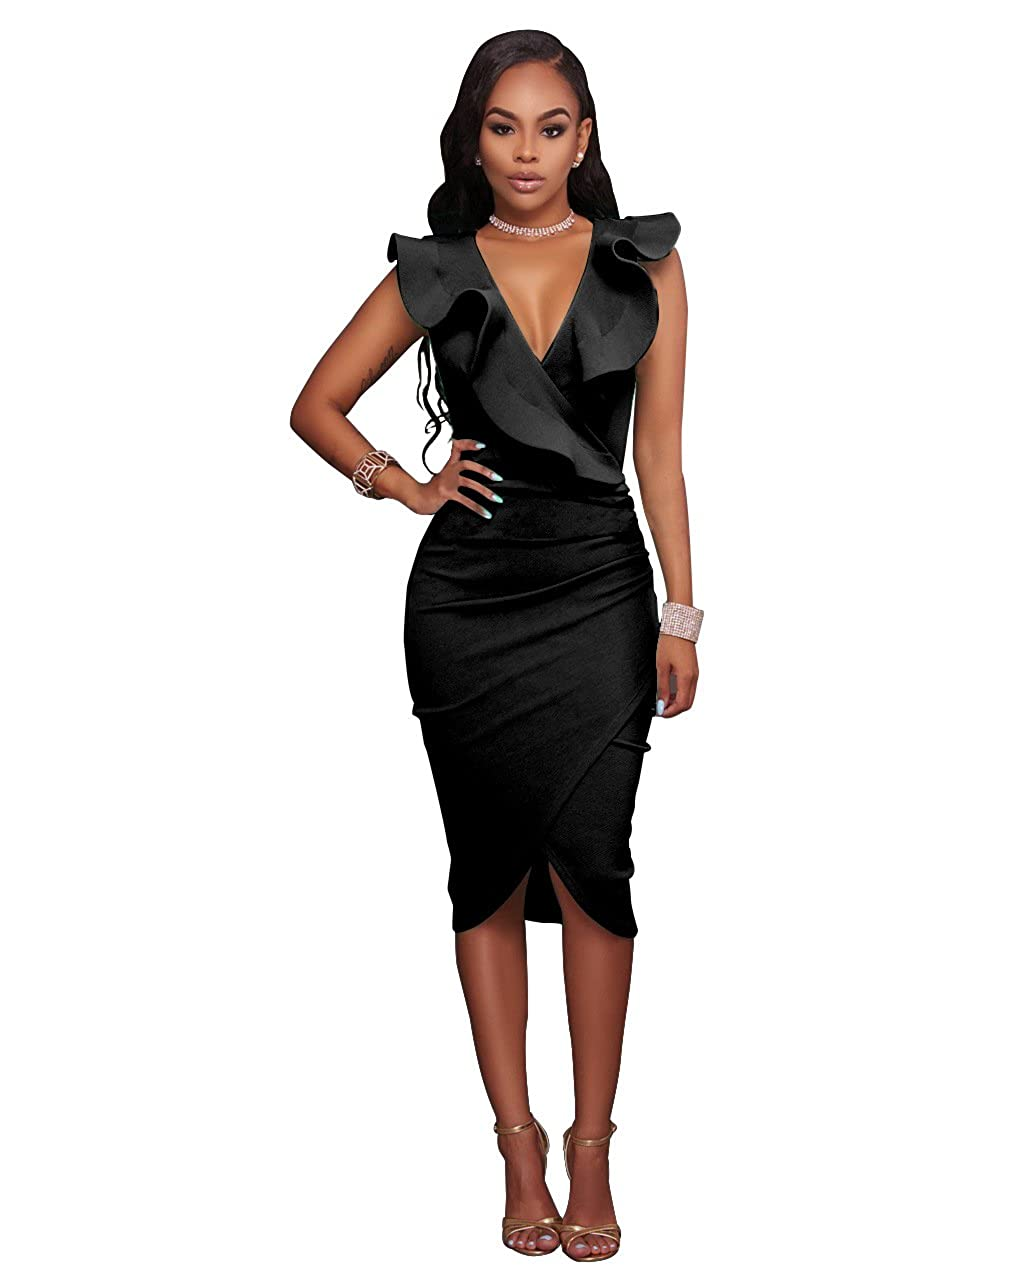 6f9ec6f1782b VERTTEE V Neck Ruffle Plain Bodycon Midi Tight Wrap Women's Party Dress  Woman Dress Club Dress at Amazon Women's Clothing store: